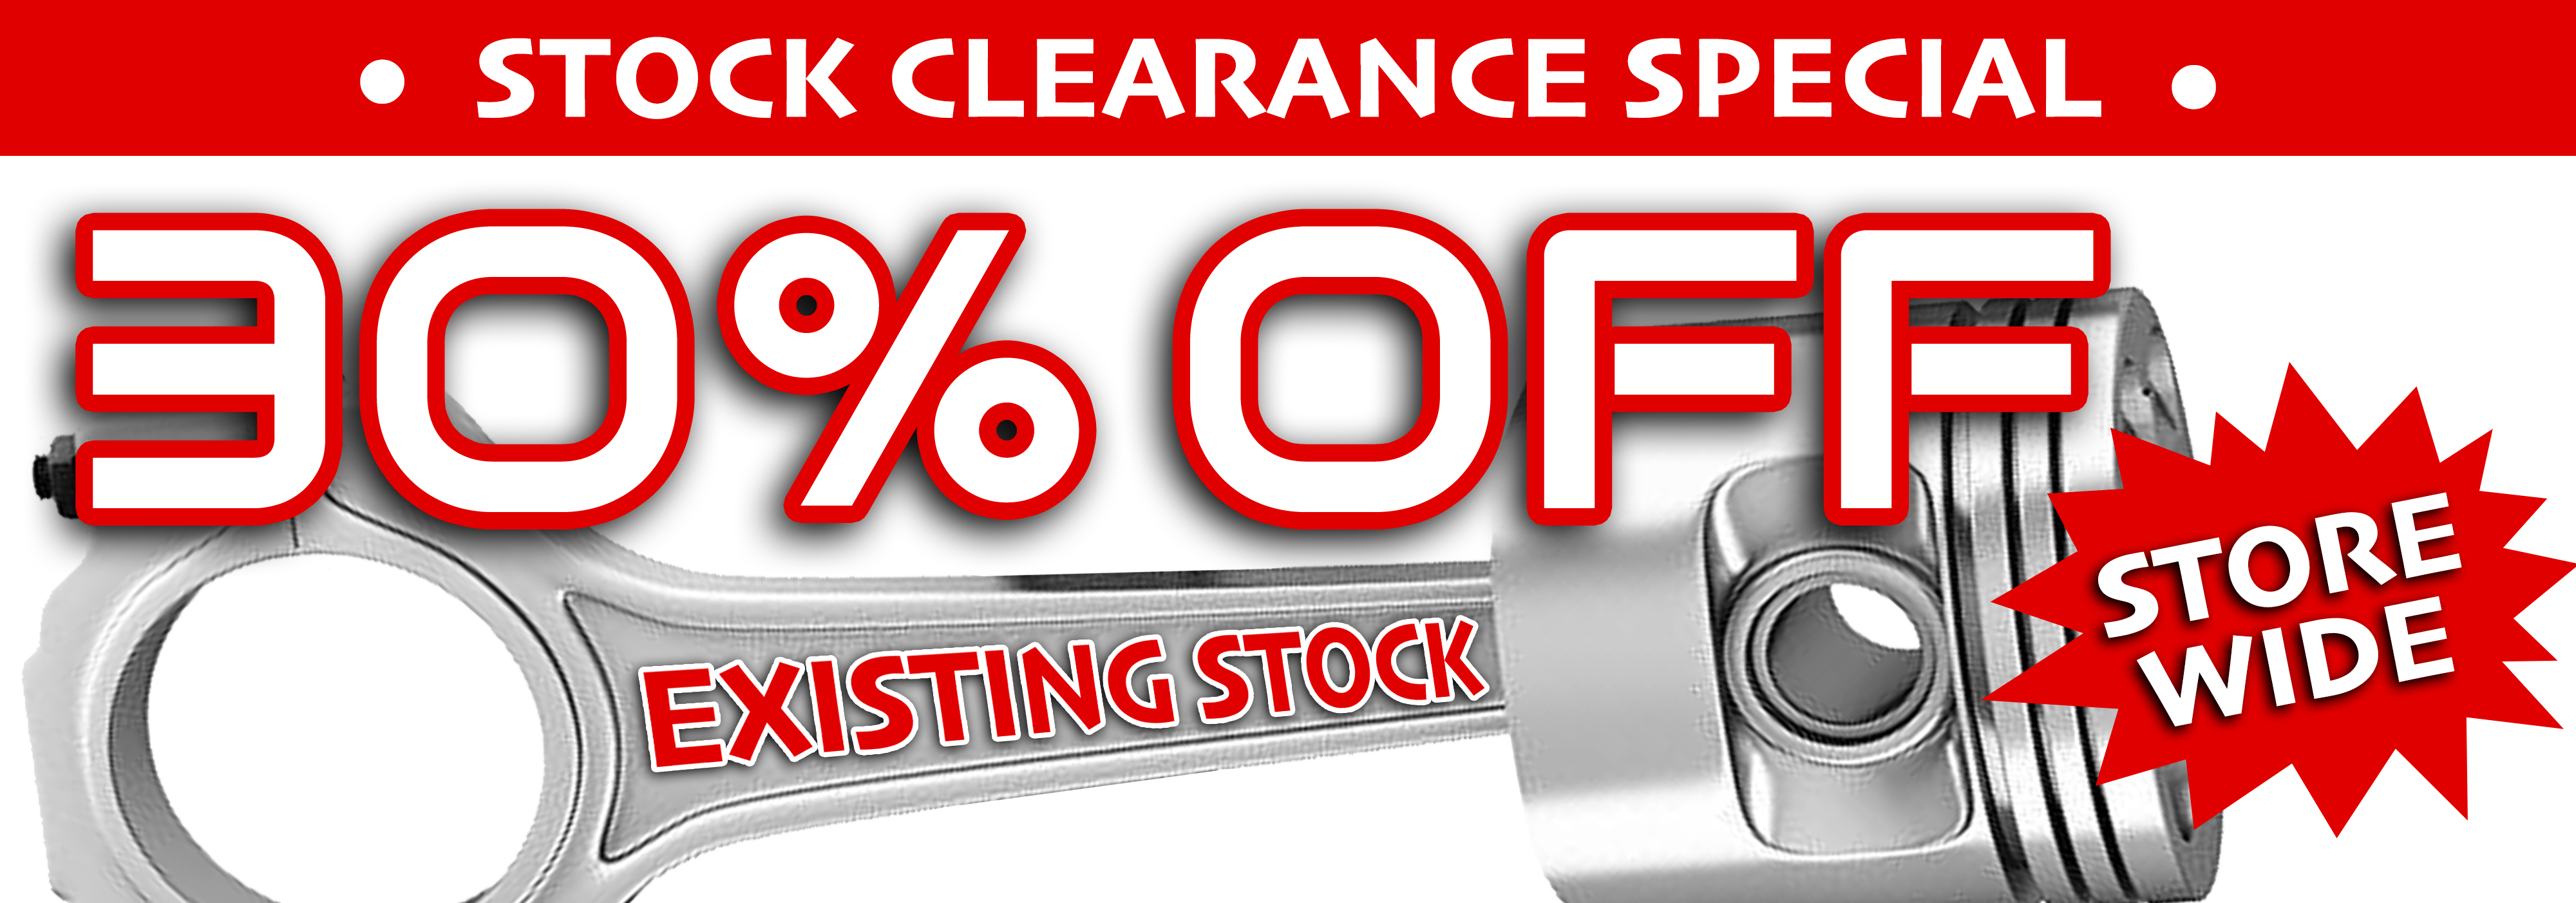 Car wreckers, Penrith Auto Recyclers in Western Sydney are offering a Christmas special of 30% off all existing stock store wide including fully tested quality second hand, used car parts and genuine or aftermarket products.